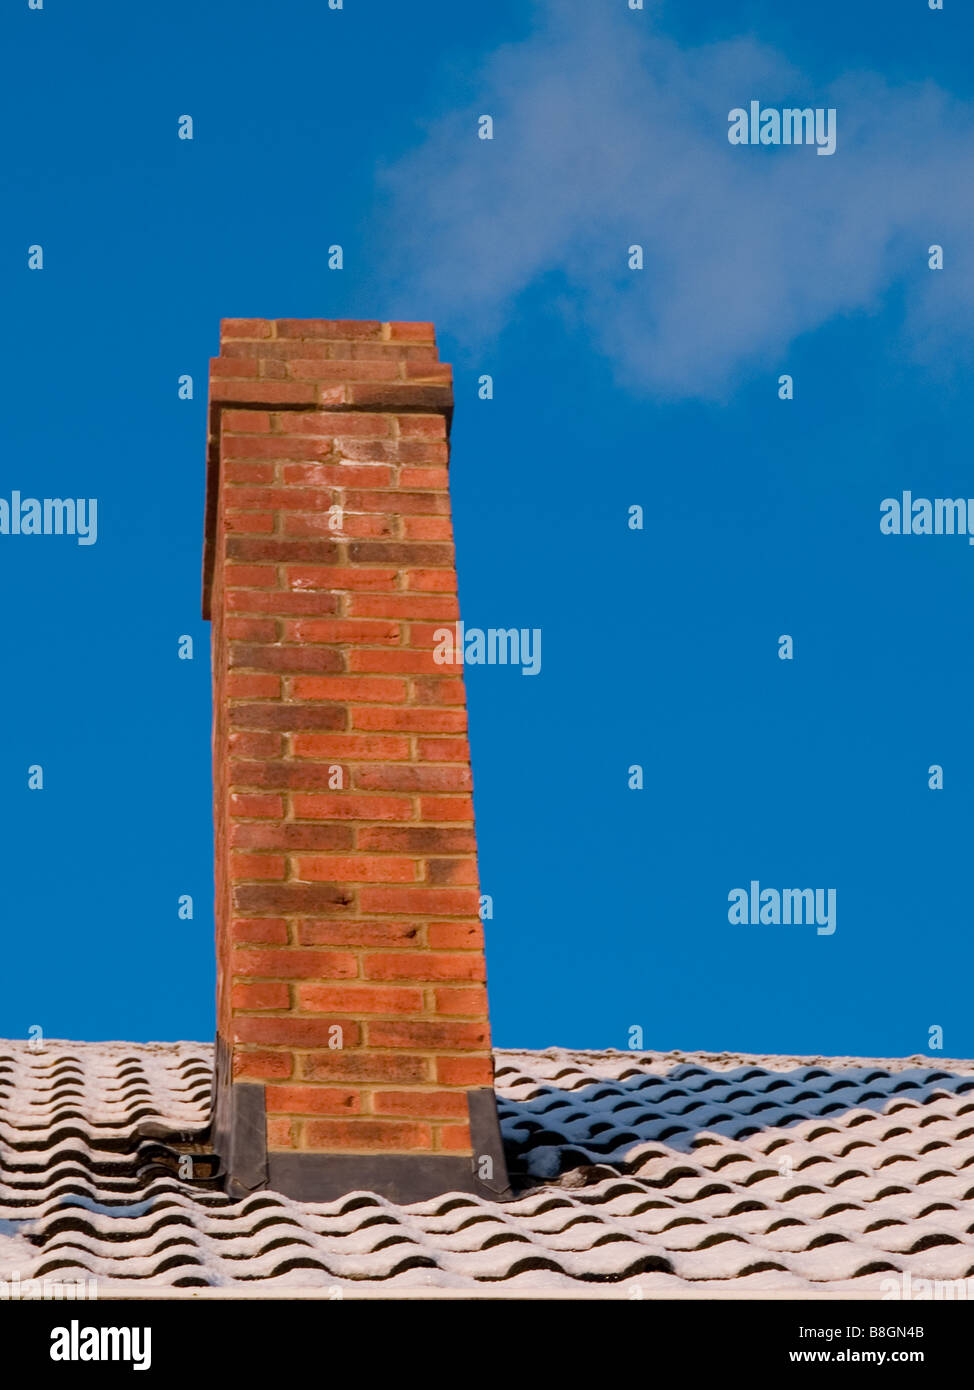 chimney stack - Stock Image